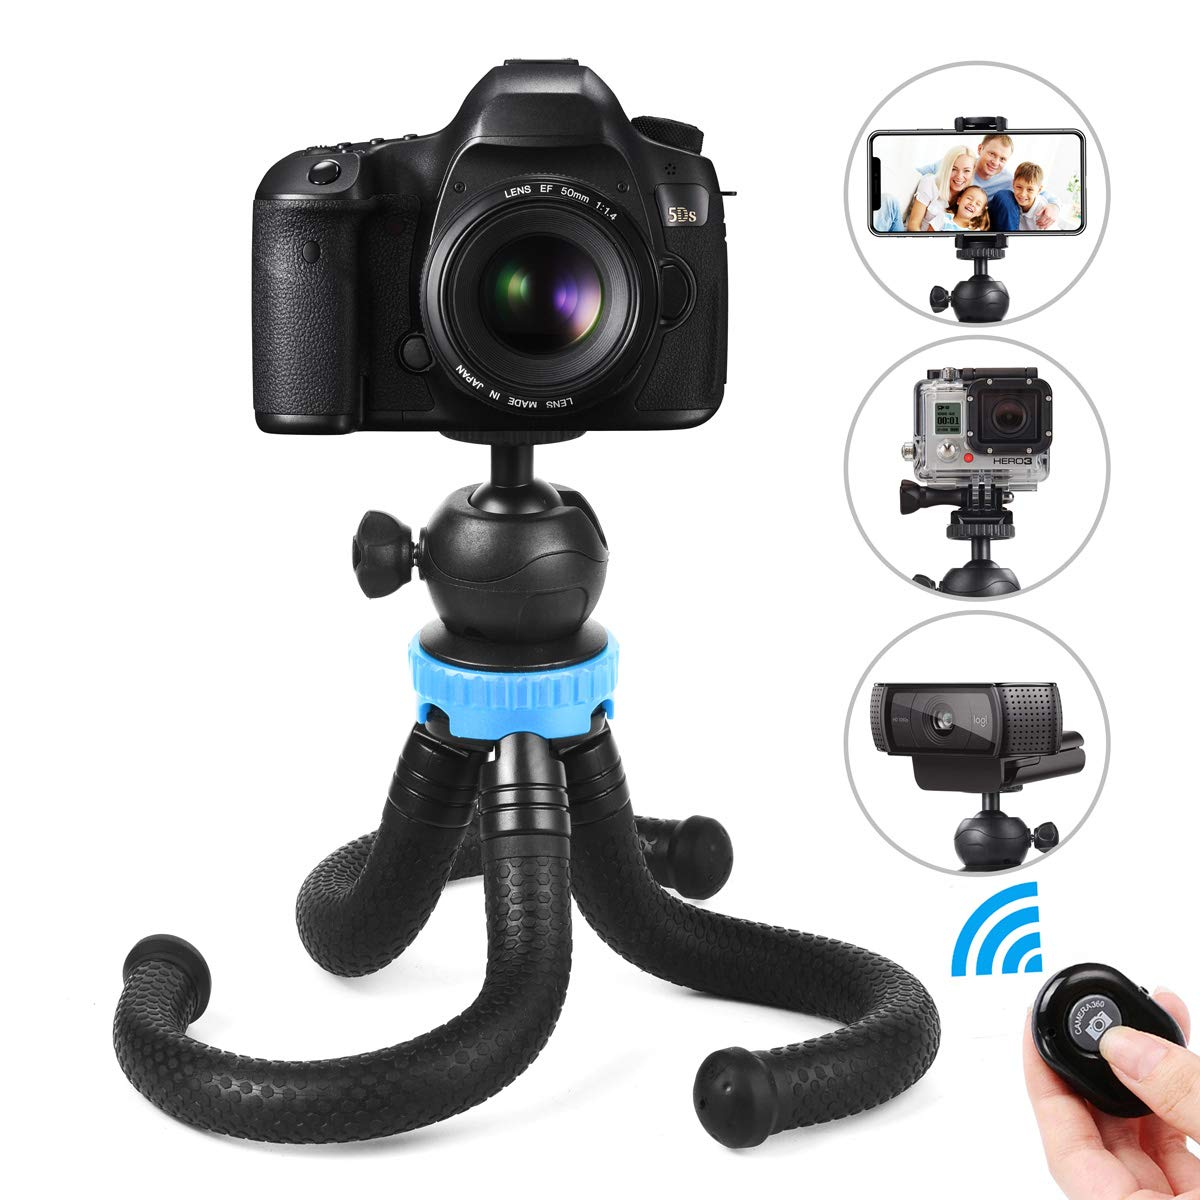 Phone Tripod, Foaber Flexible Portable Travel Octopus Tripods with Bluetooth Wireless Remote Shutter, Compatible with iPhone X 8 Plus, Samsung, GoPro, Camera and All Mobile Cell Phone